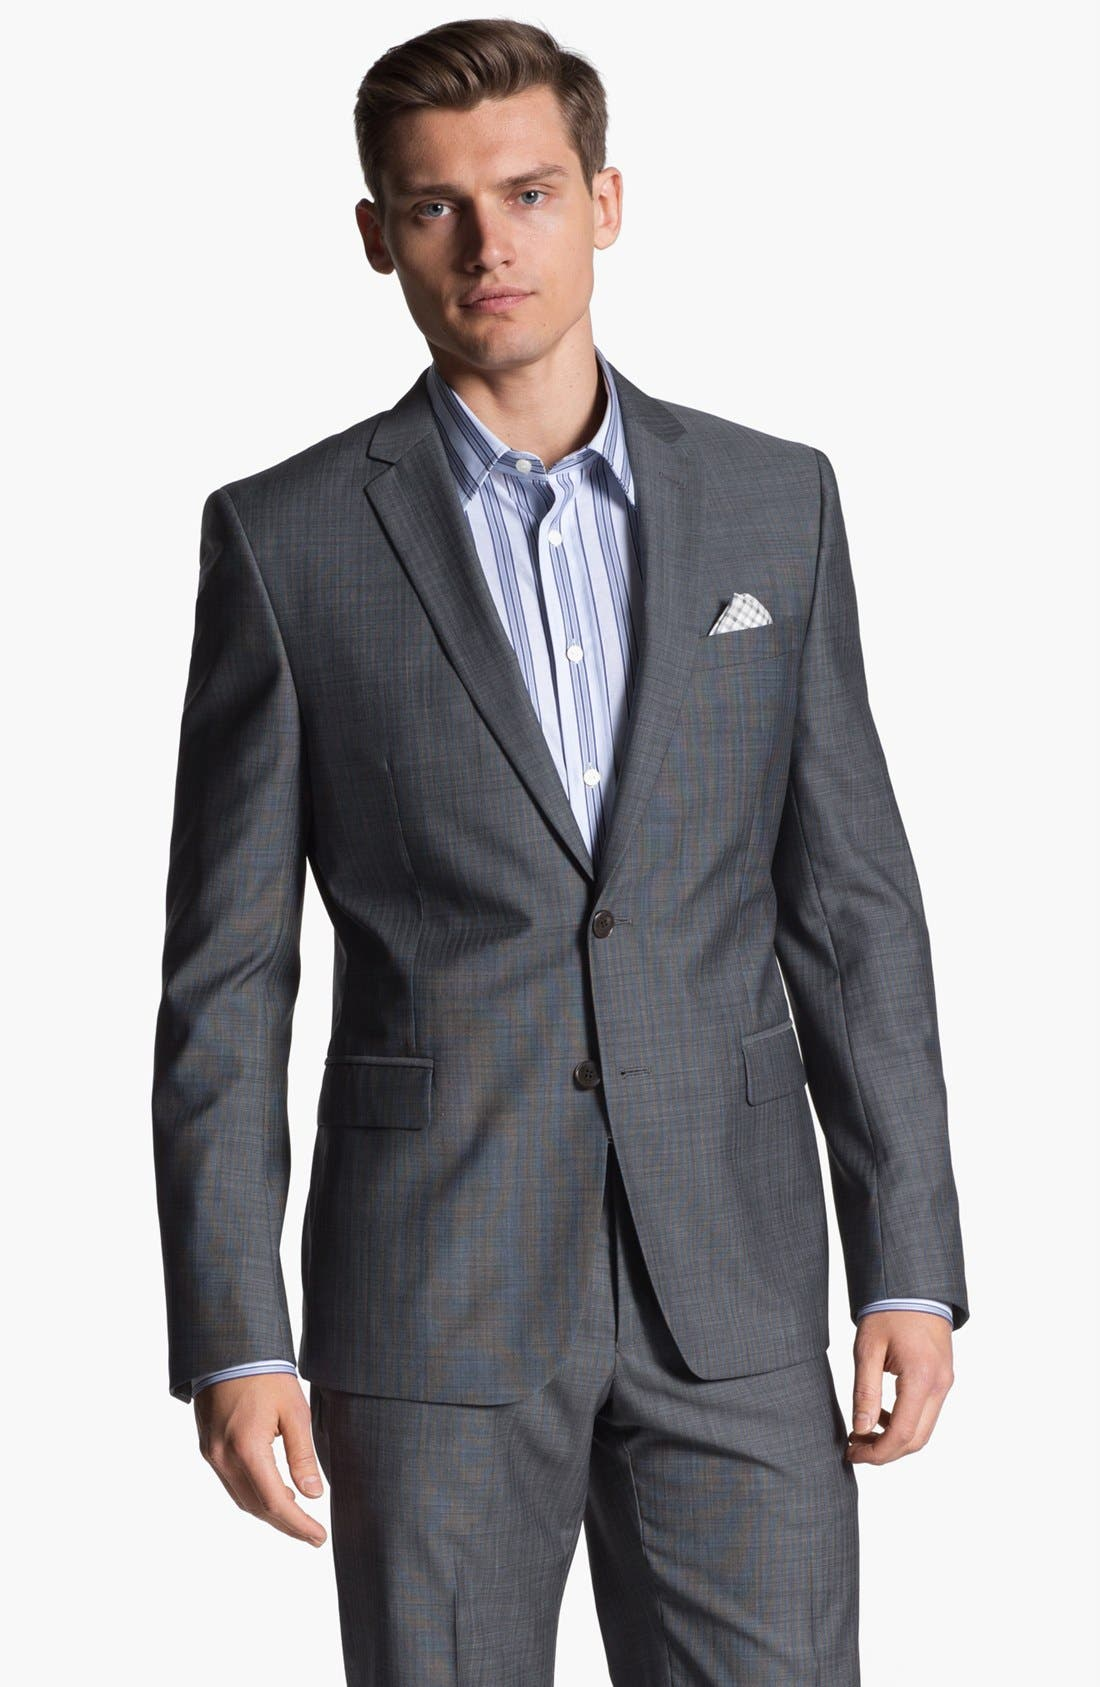 Alternate Image 1 Selected - Versace Trim Fit Wool Blend Suit